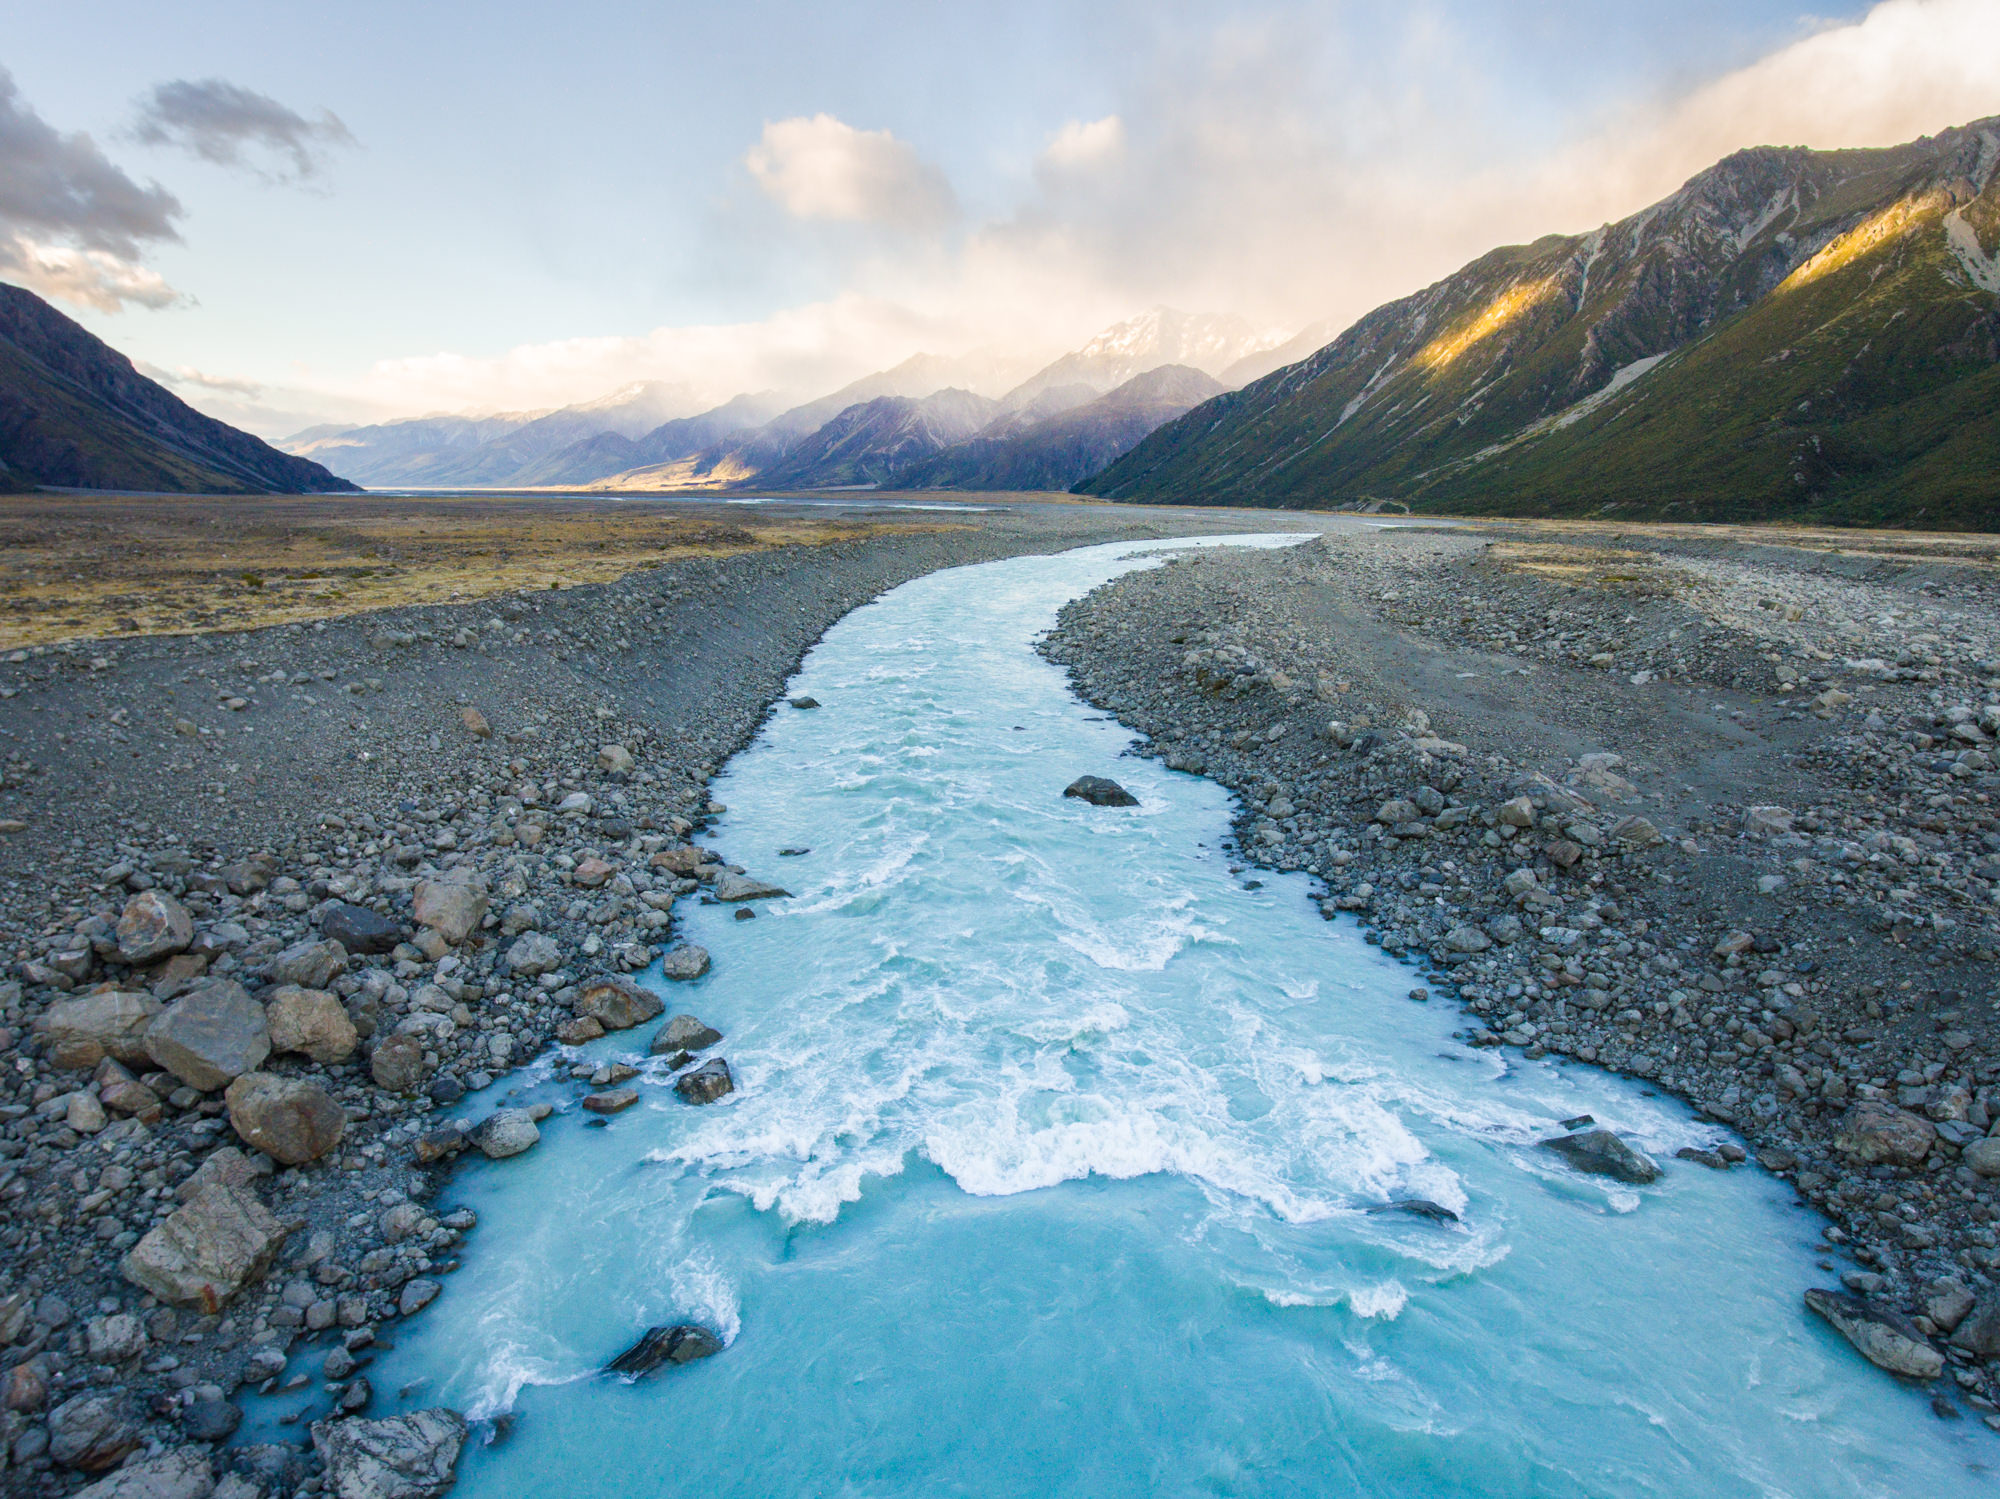 A blue glacial river in mountainous valley